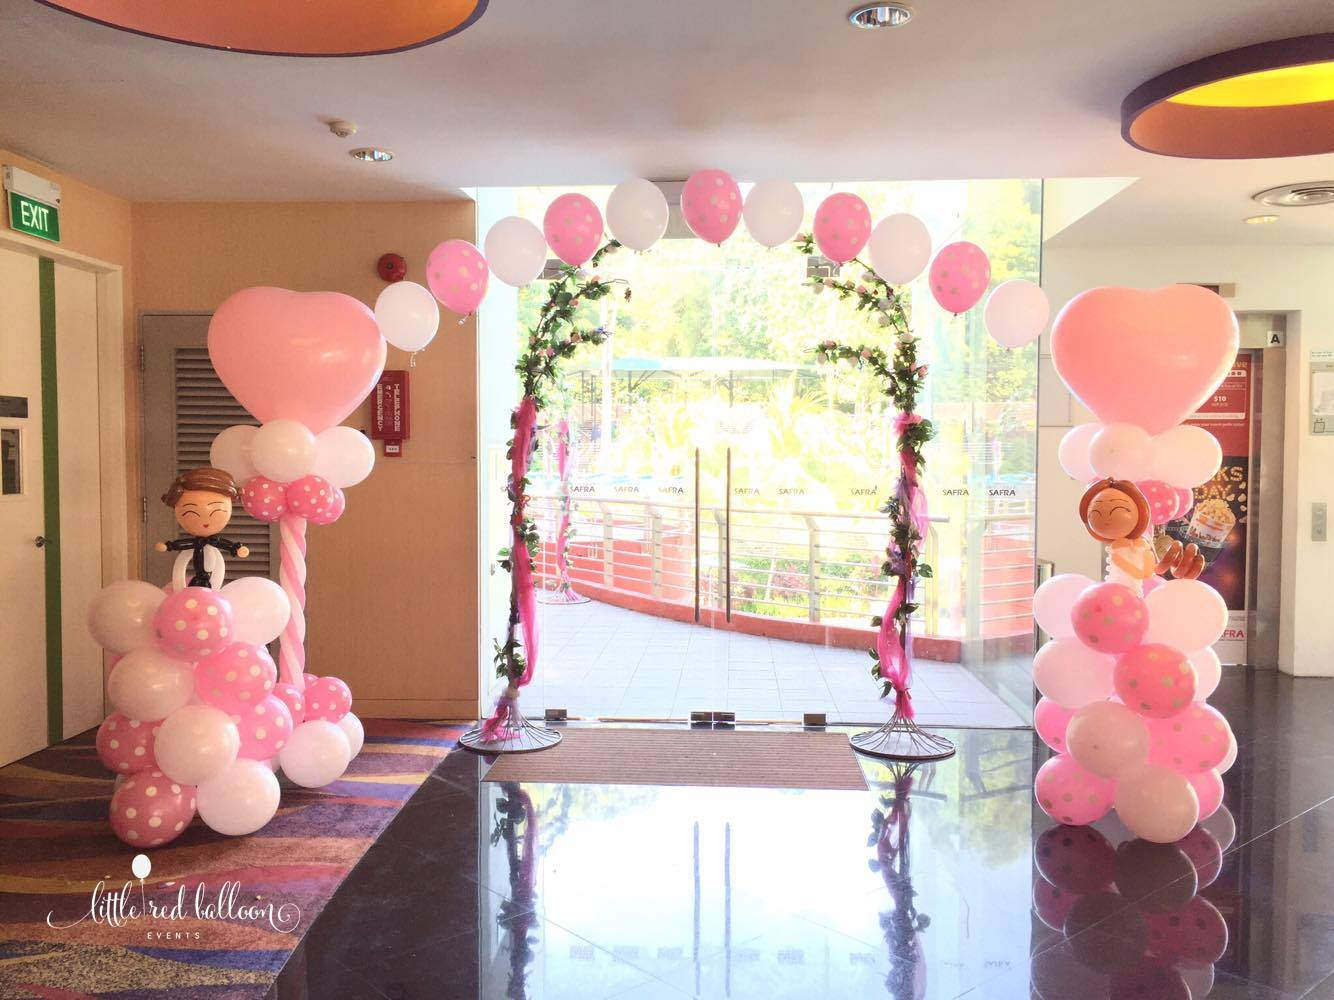 Premium Balloon Arch In Singapore | Little Red Balloon Singapore